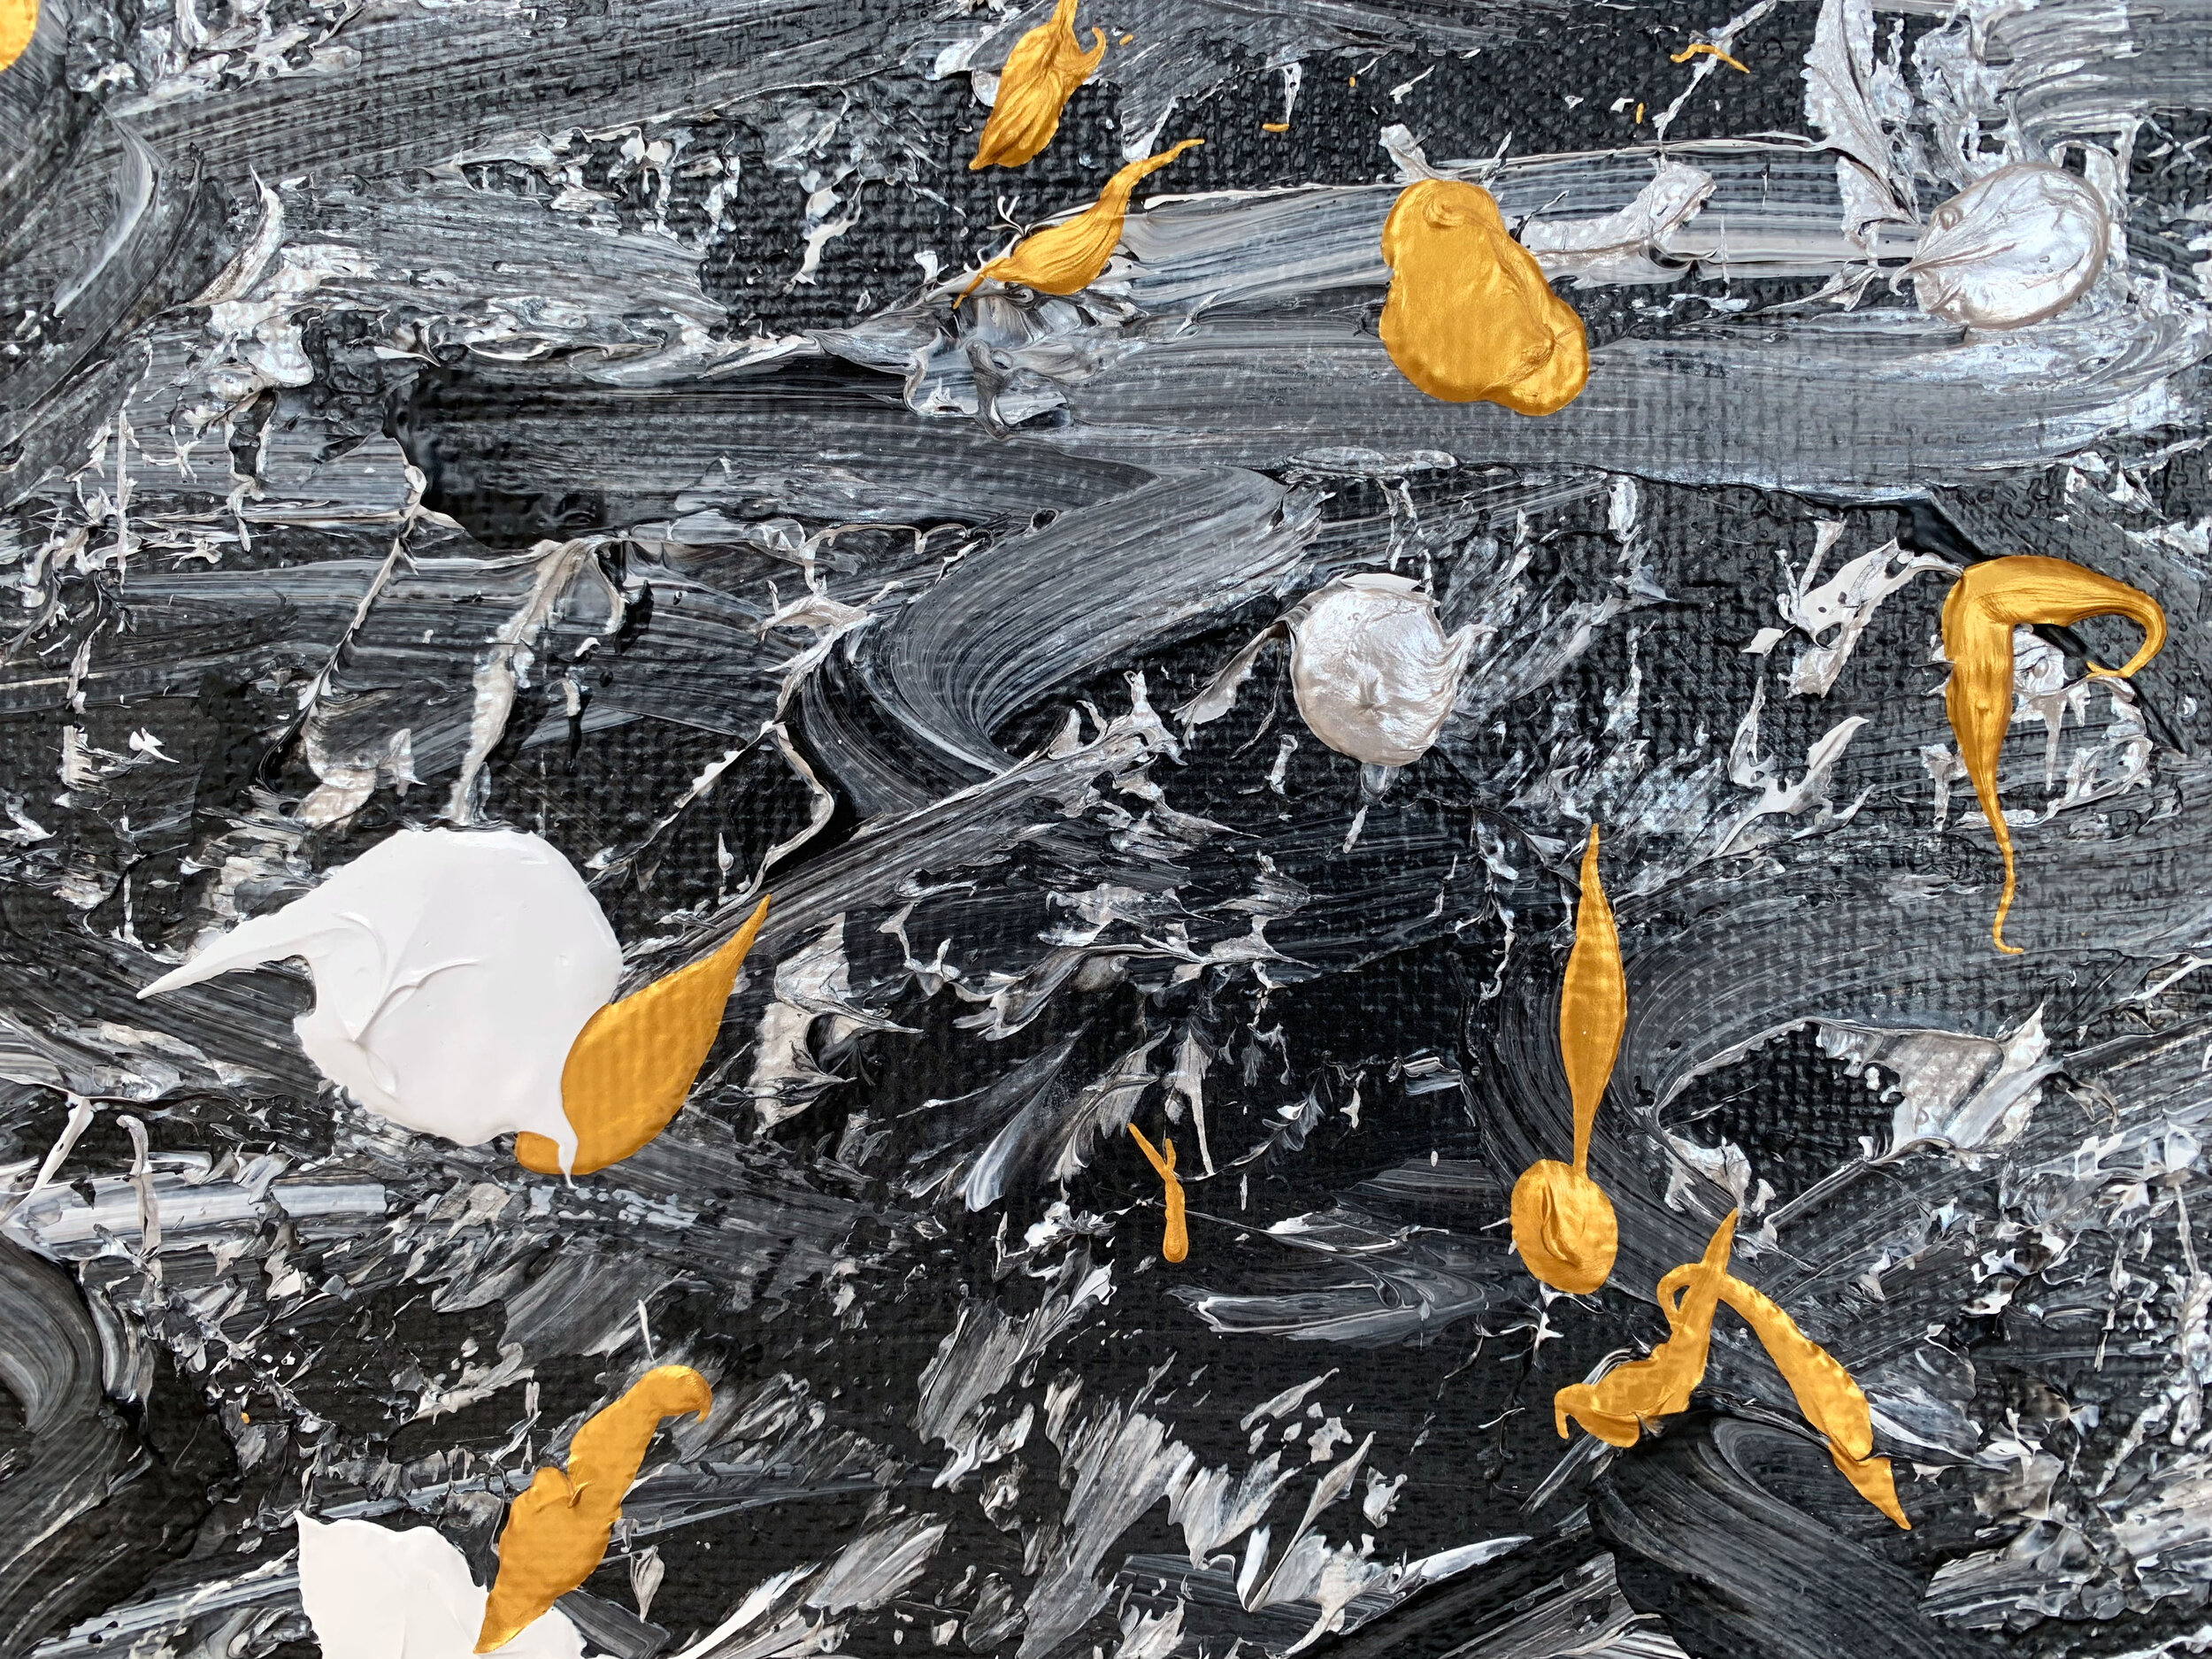 abstract-expressionism-painting-zhubao-fashao-detail-2.jpg